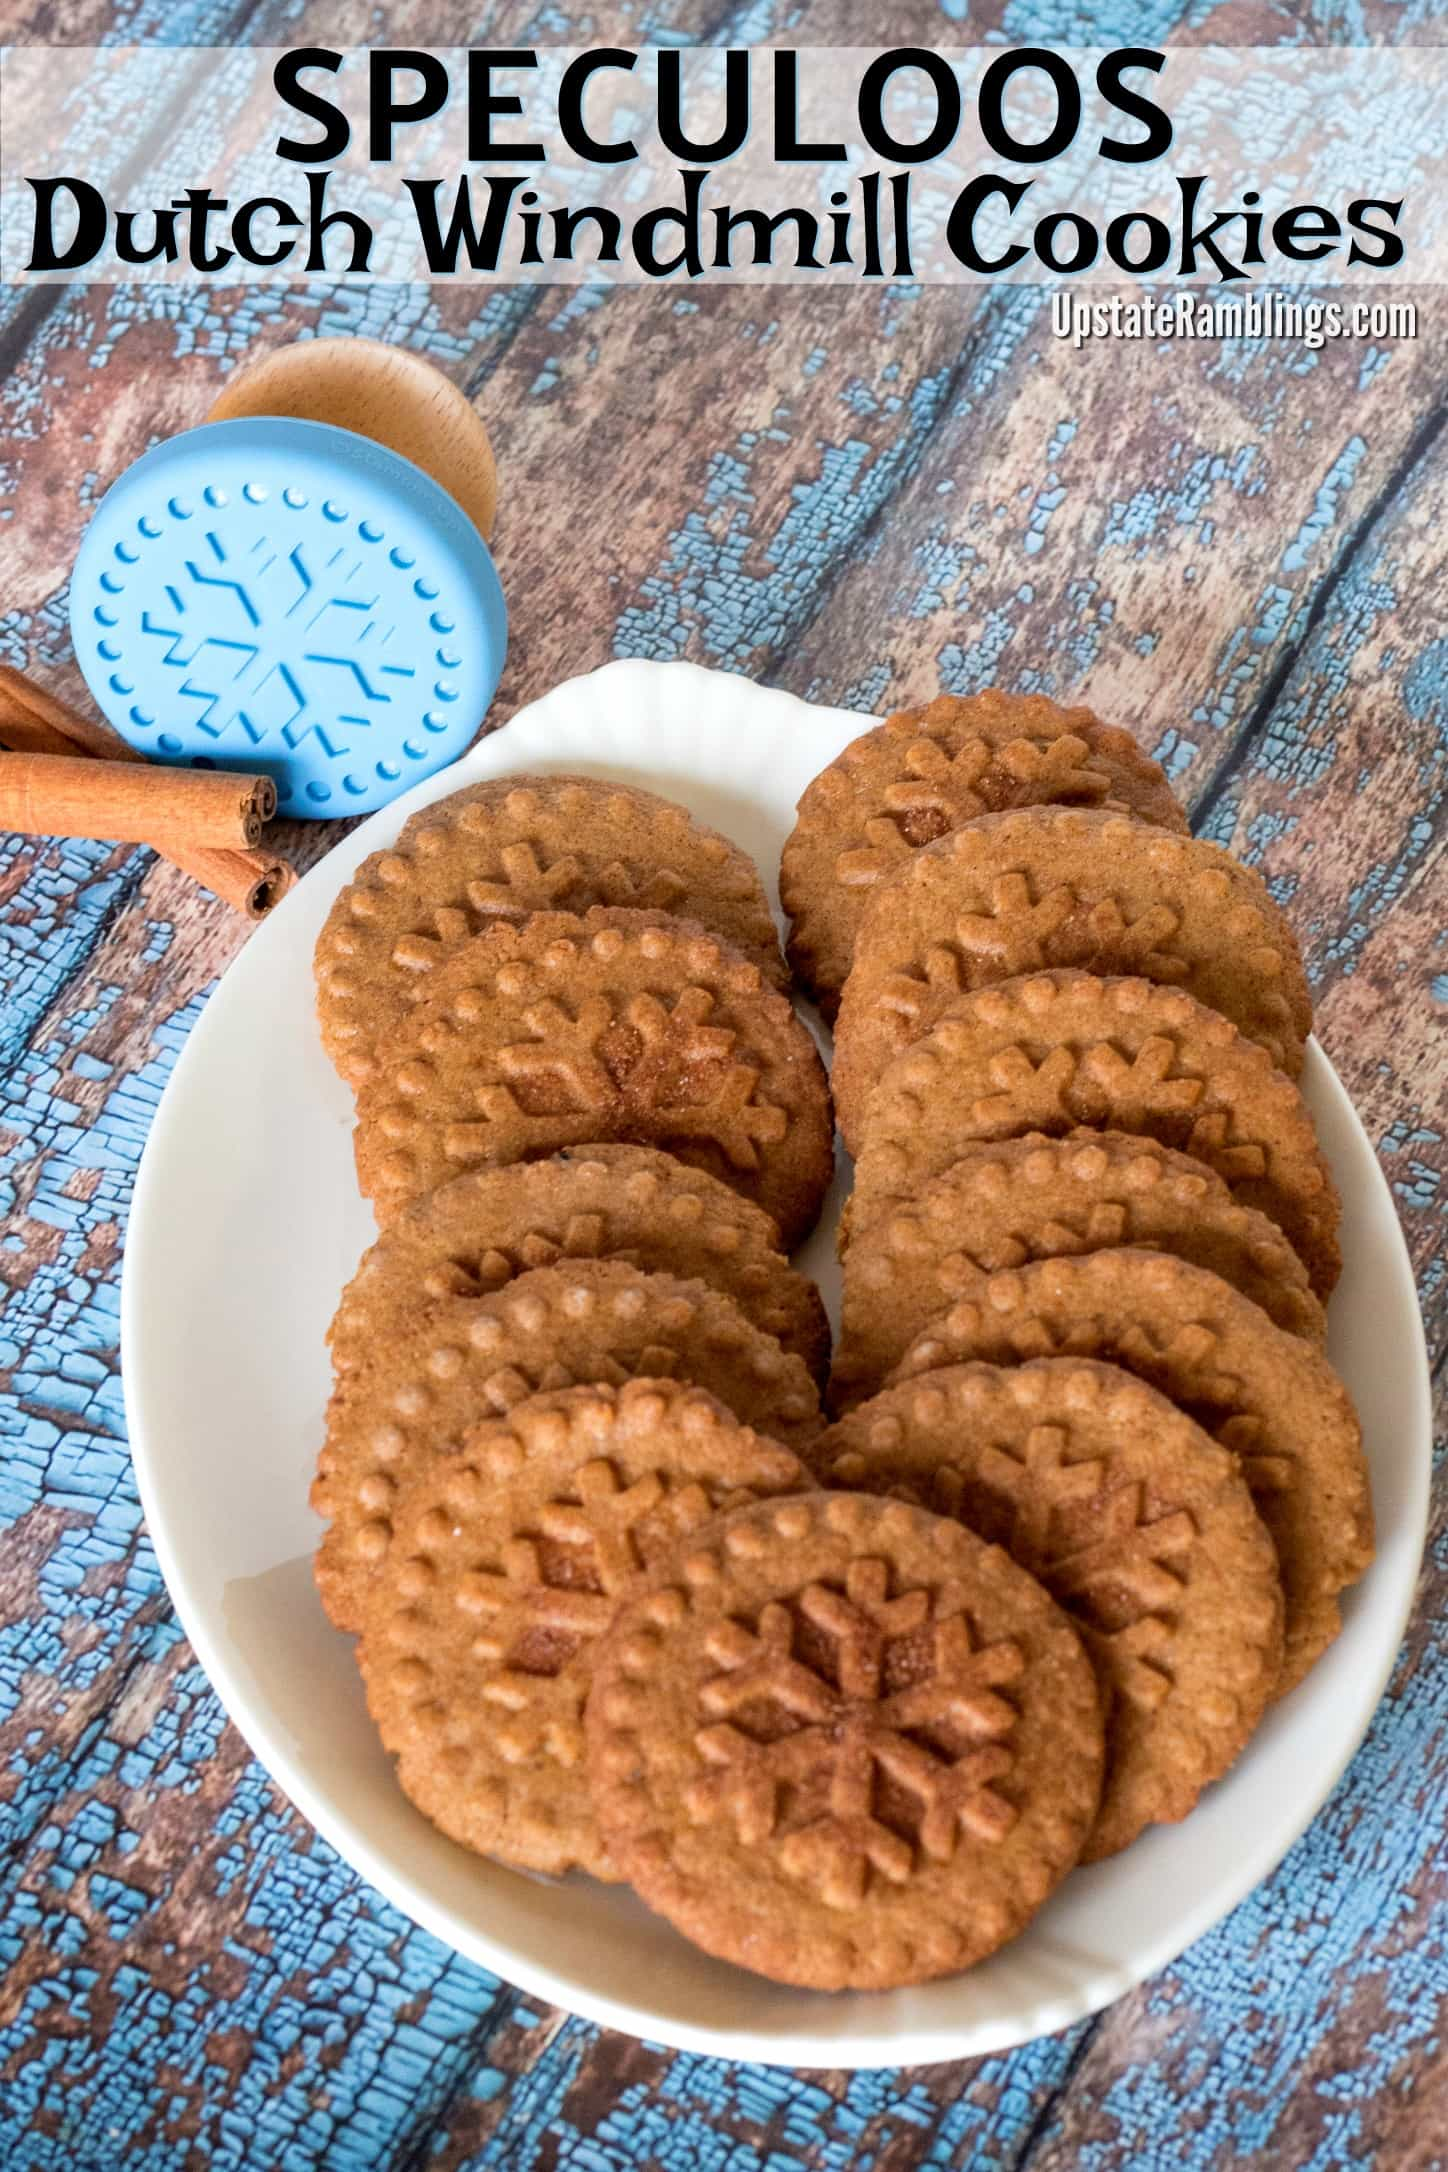 Speculoos - Dutch Windmill Cookies - a traditional stamped cinnamon and spice infused cookie from the Netherlands and Belgium - Speculaas - Make holiday cookies from around the world this Christmas #cookies #christmascookies #speculoos #speculaas